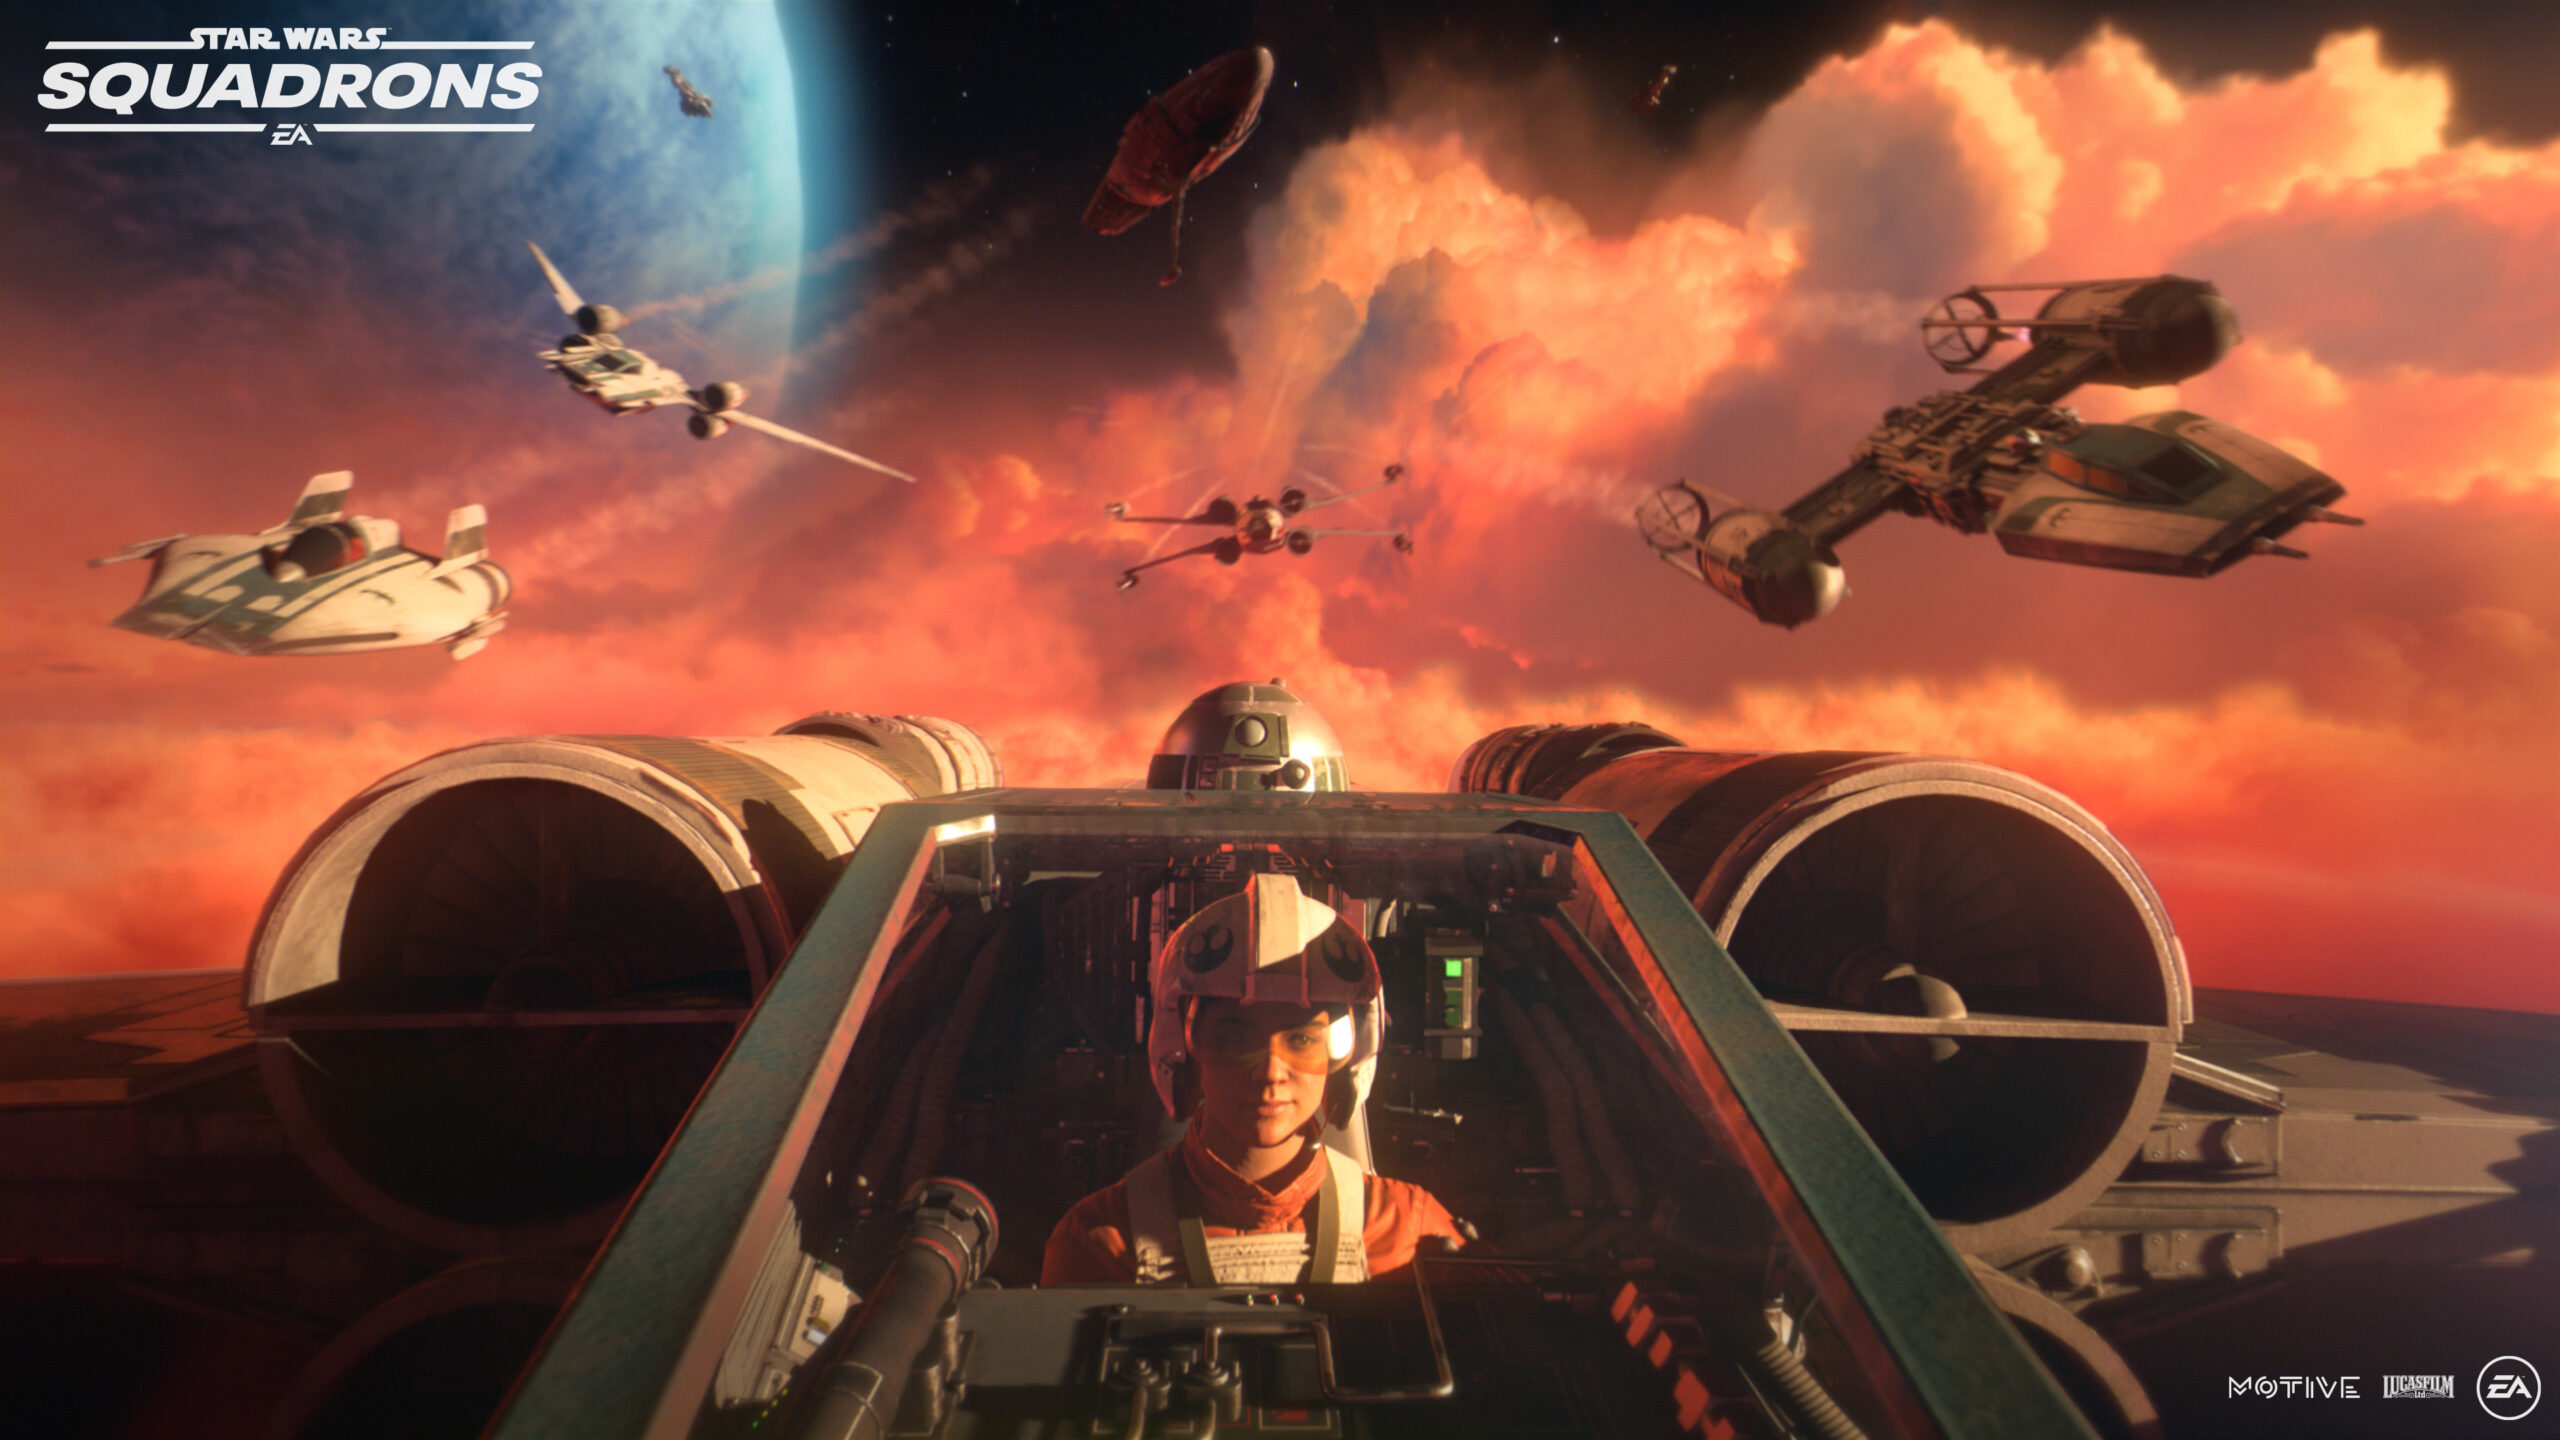 8 4k Ultra Hd Star Wars Squadrons Videogame Wallpapers